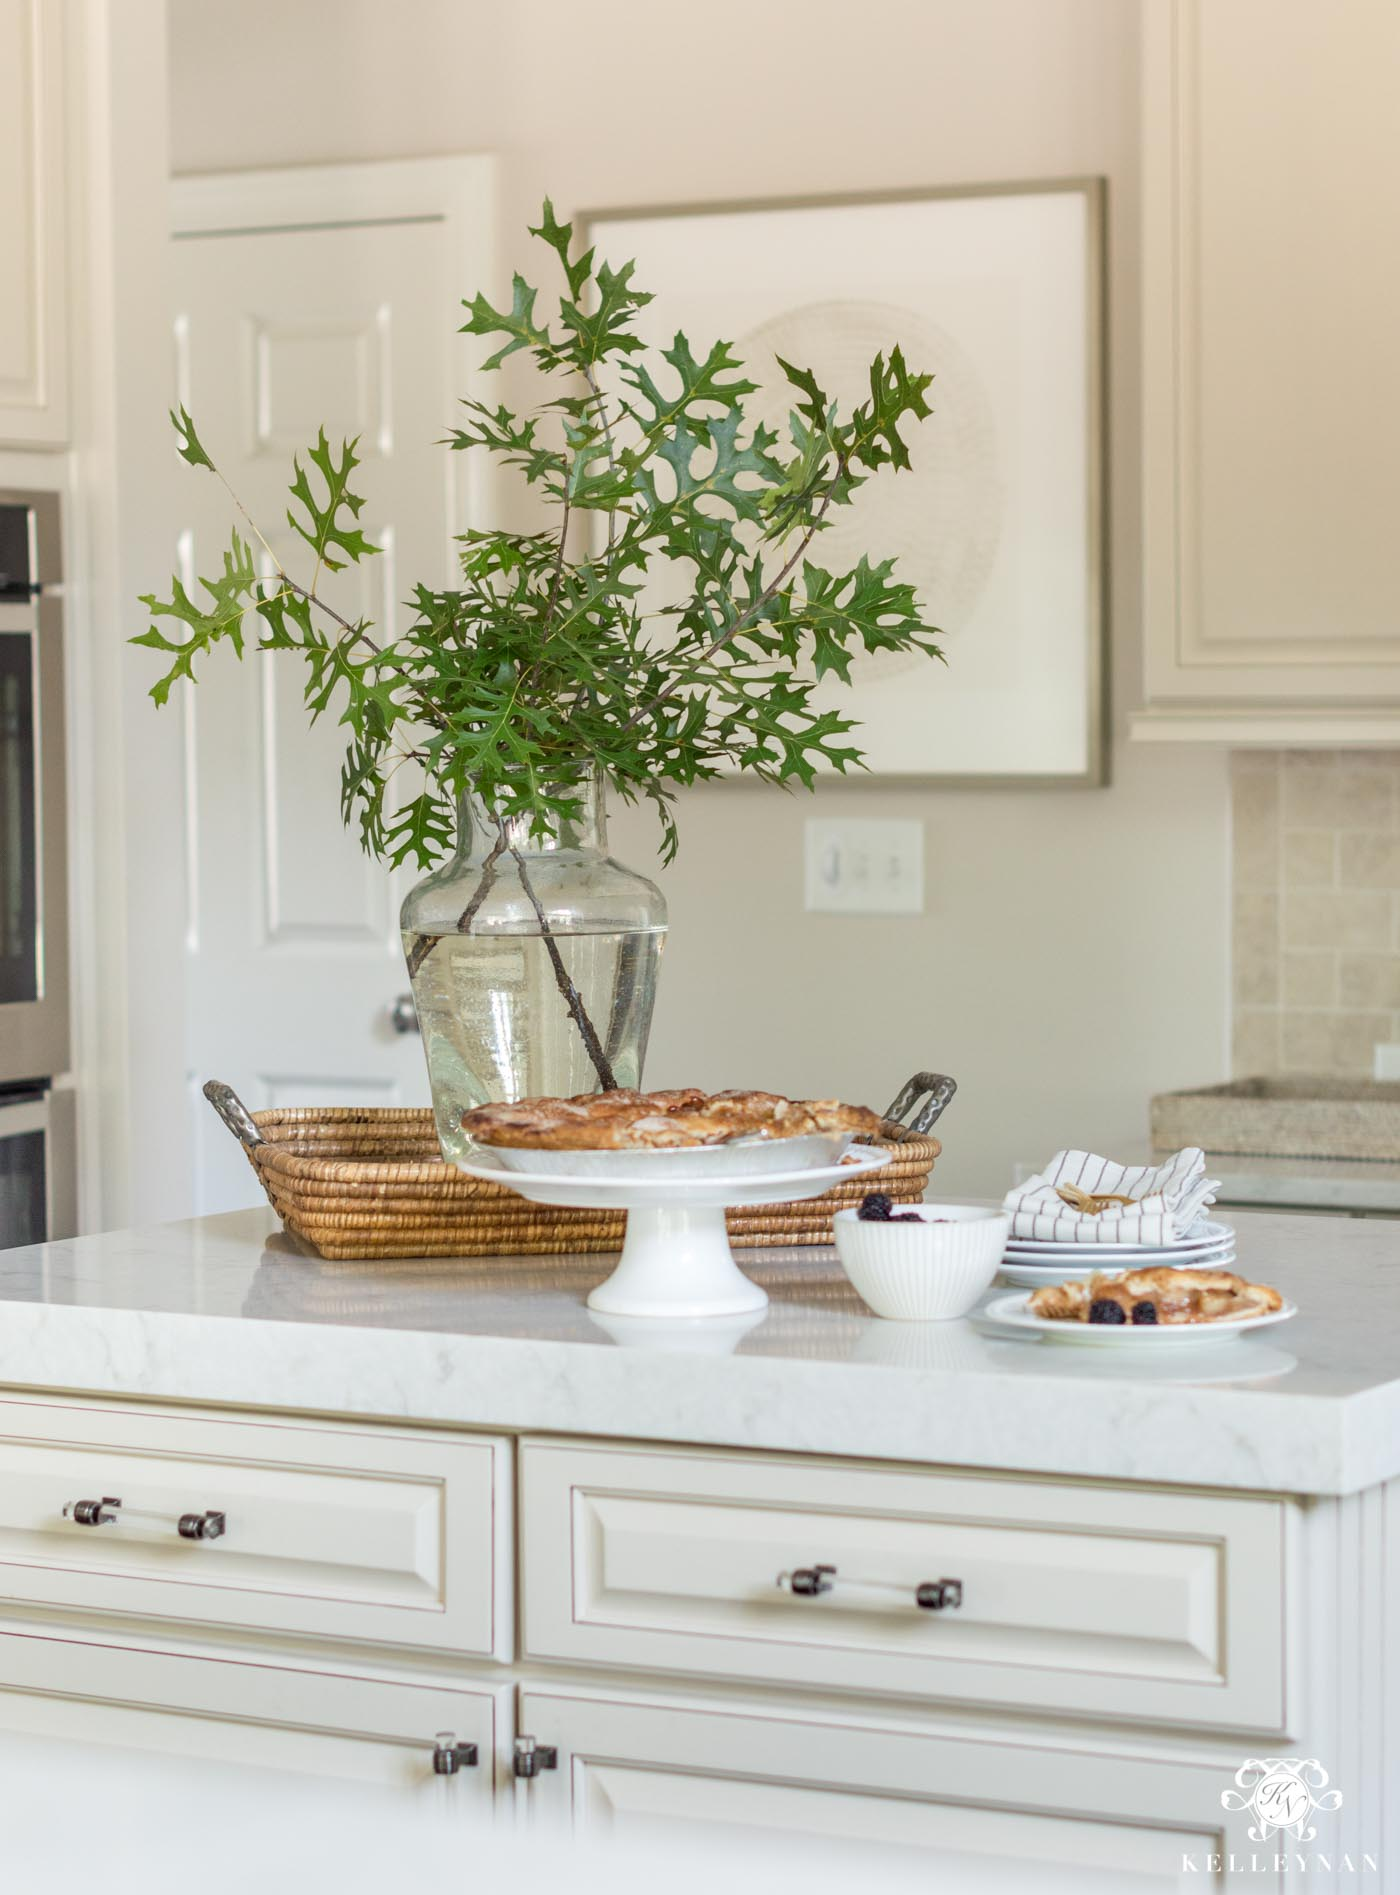 How to style a kitchen island